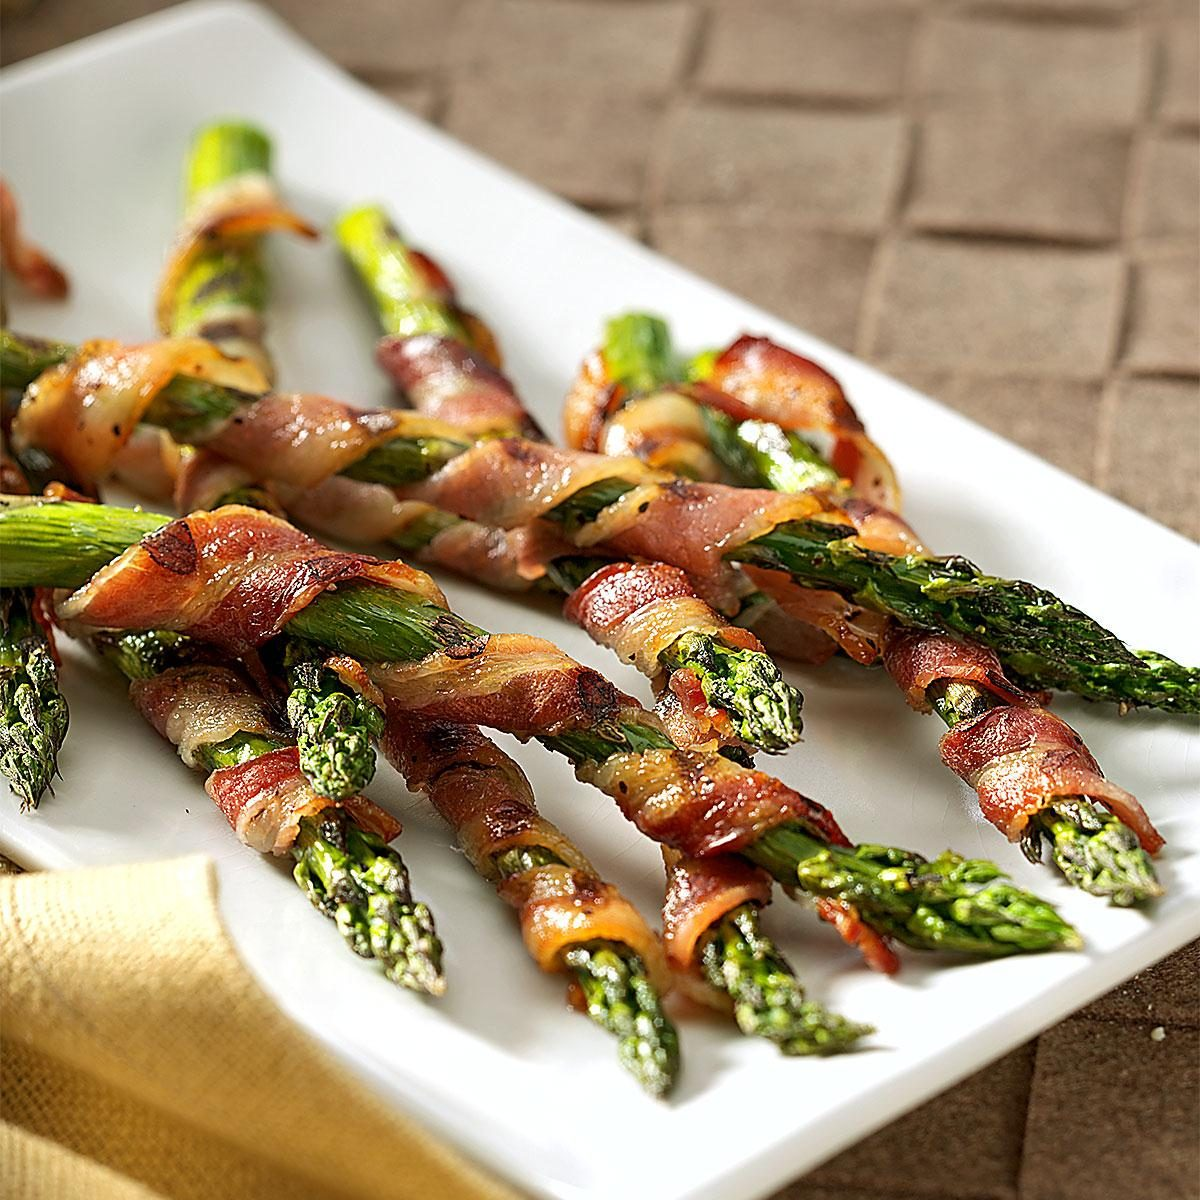 Bacon wrapped asparagus recipe taste of home for Side dish recipes for grilling out